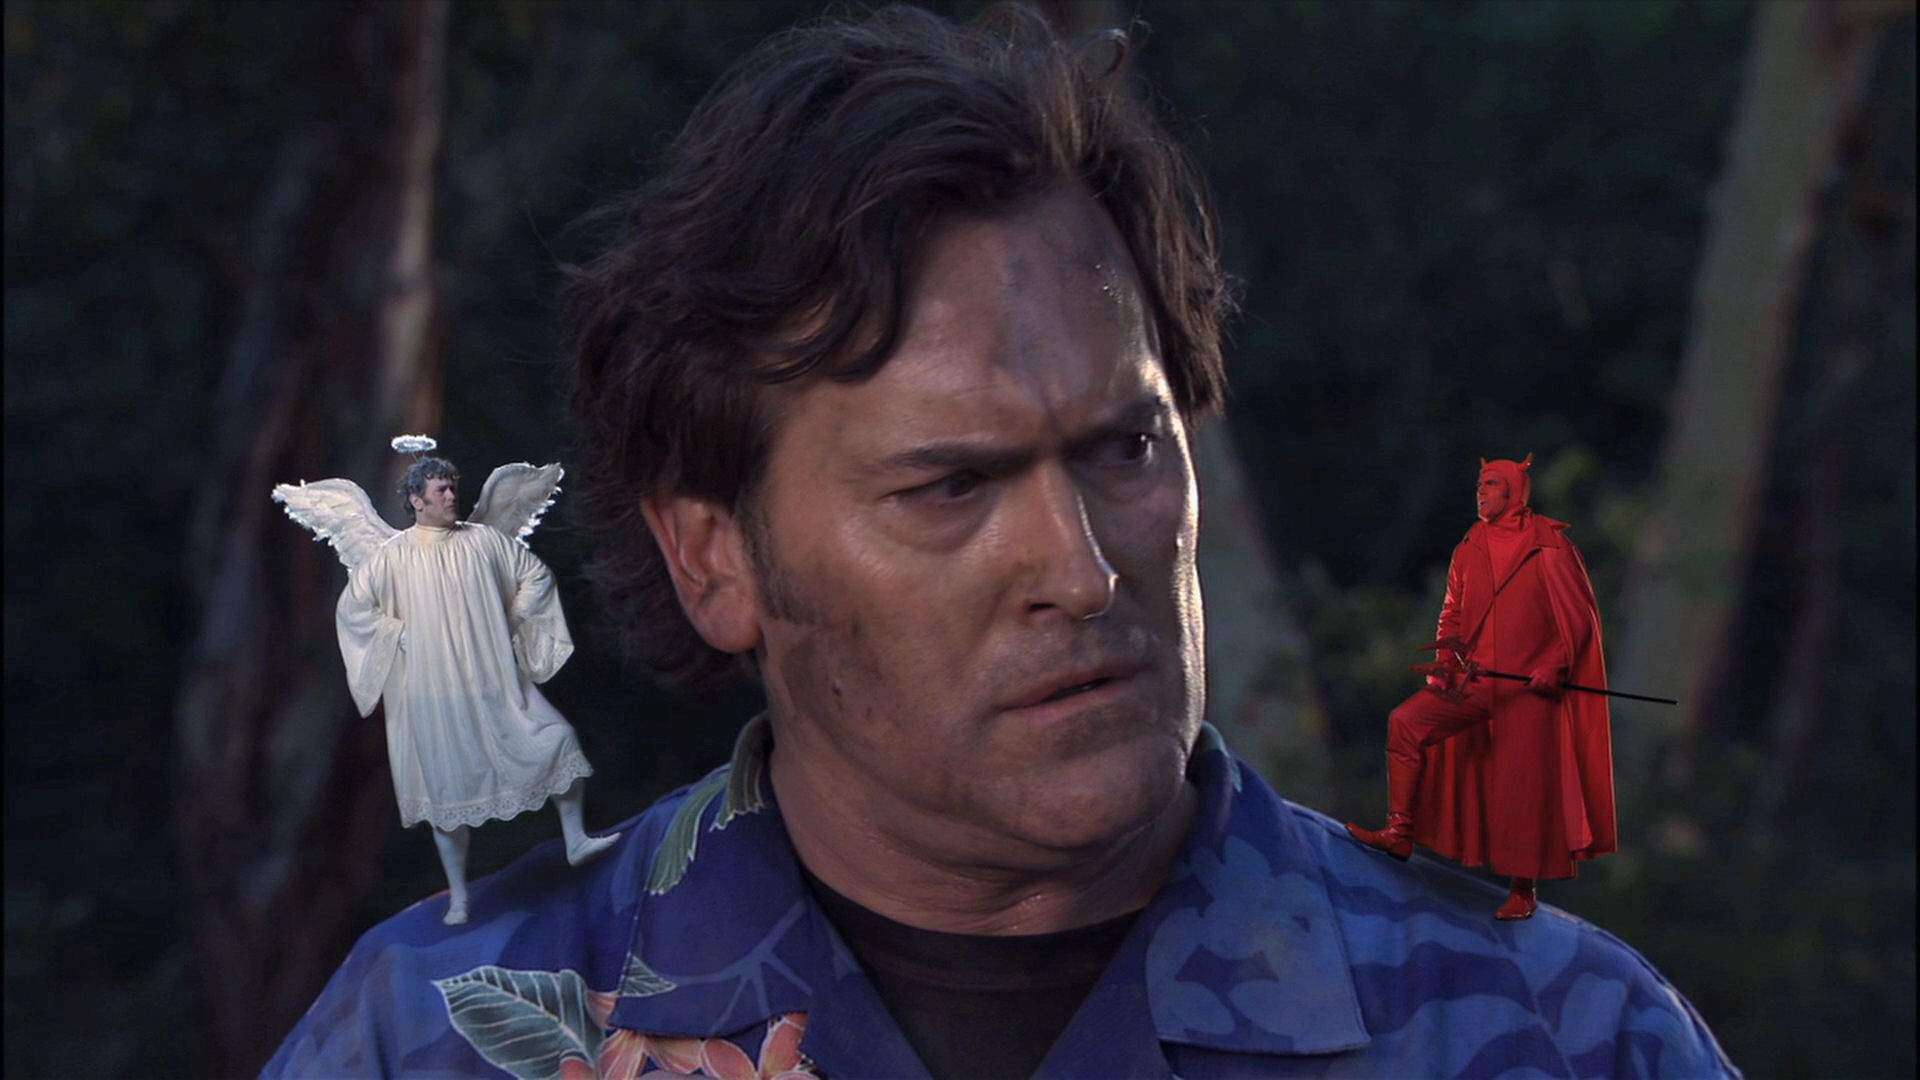 bruce campbell - Bruce Campbell Still Working on The Expendables of Horror Idea